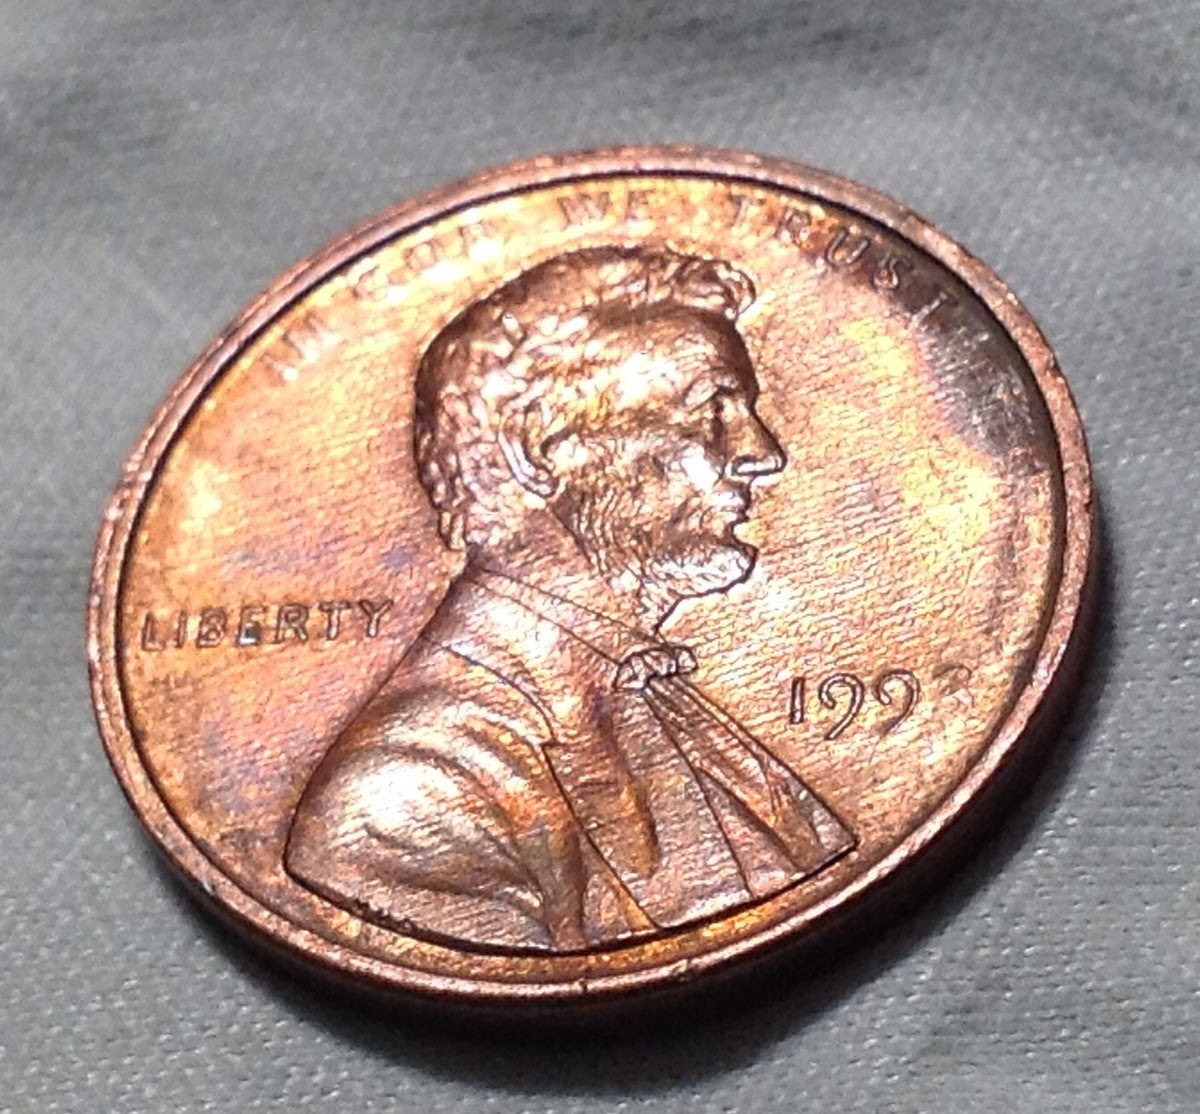 1993 - D Lincoln 1 C Penny - photo update | Collectors Weekly